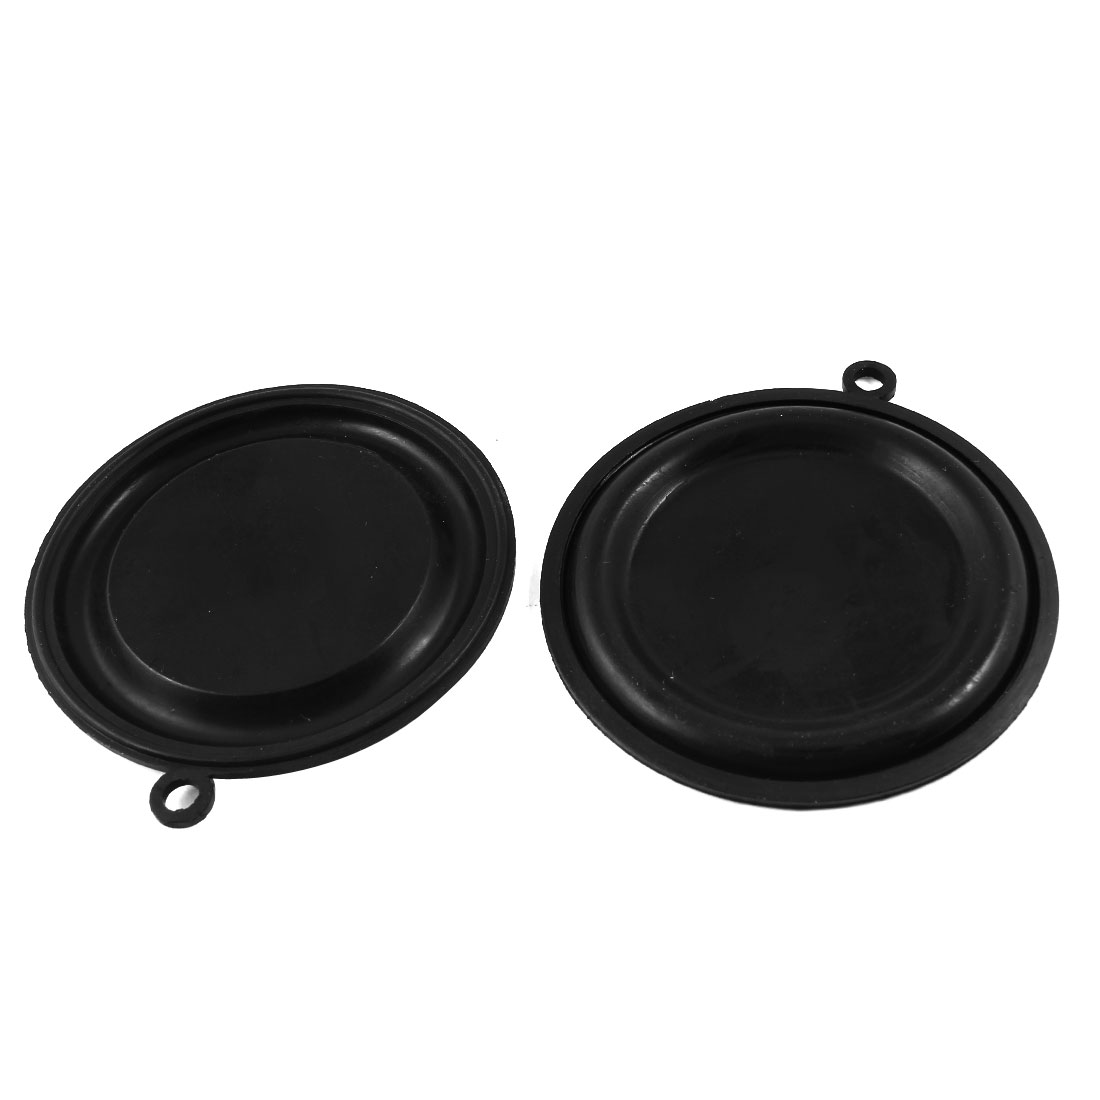 Black Water Heater Rubber Diaphragms Seal Gasket 77mm Diameter 2pcs